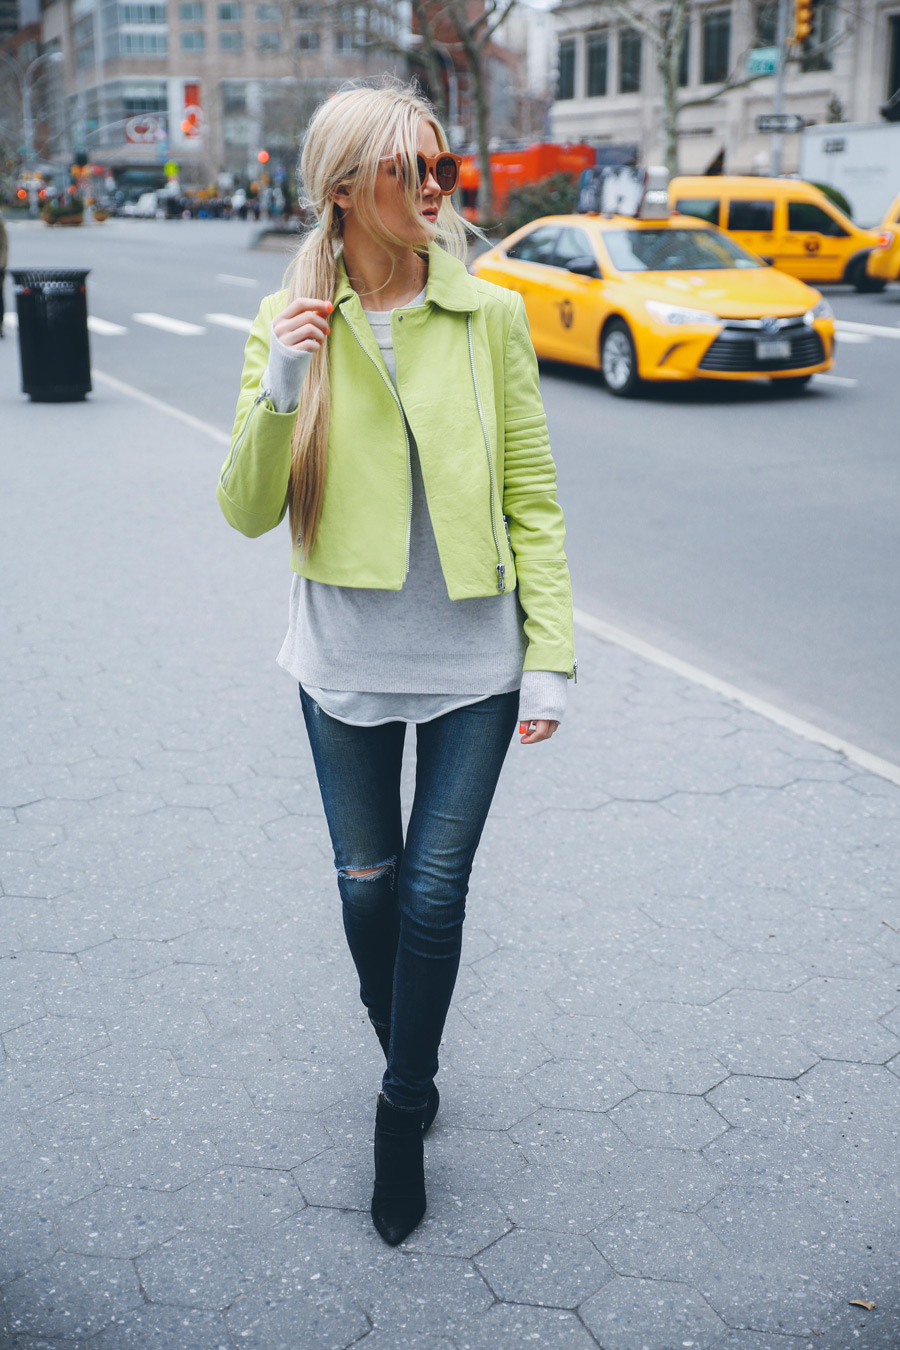 Amber Fillerup Clark is wearing a lime green Aiah leather jacket with a grey Enza Costa sweater, ripped Rag & Bone jeans and black Carolinna Espinosa ankle boots